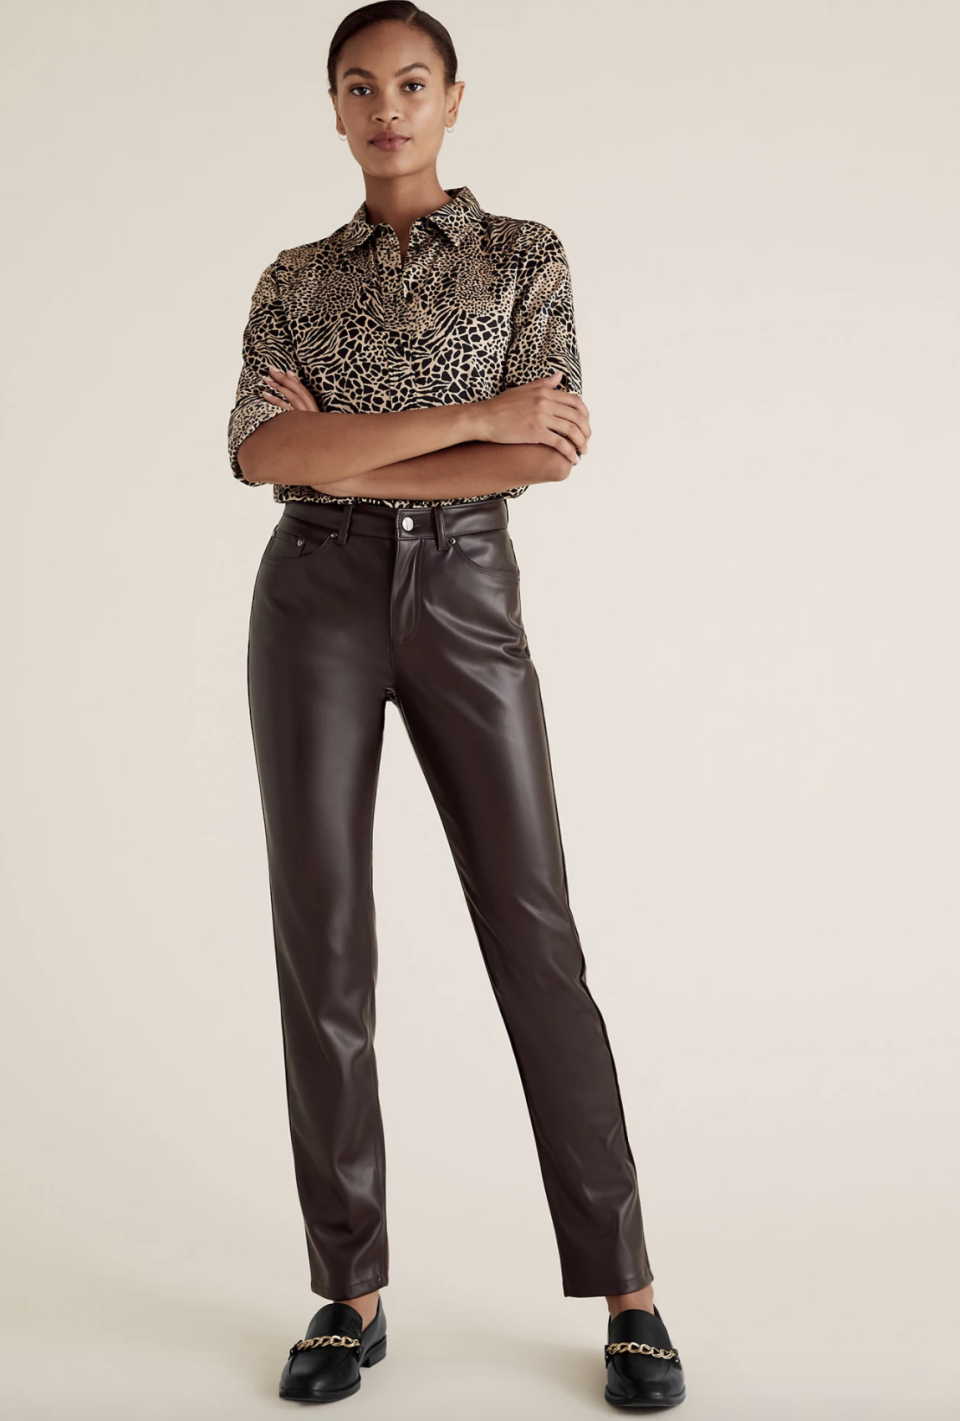 M&S Collection Sienna Faux Leather Straight Leg Trousers, $50.